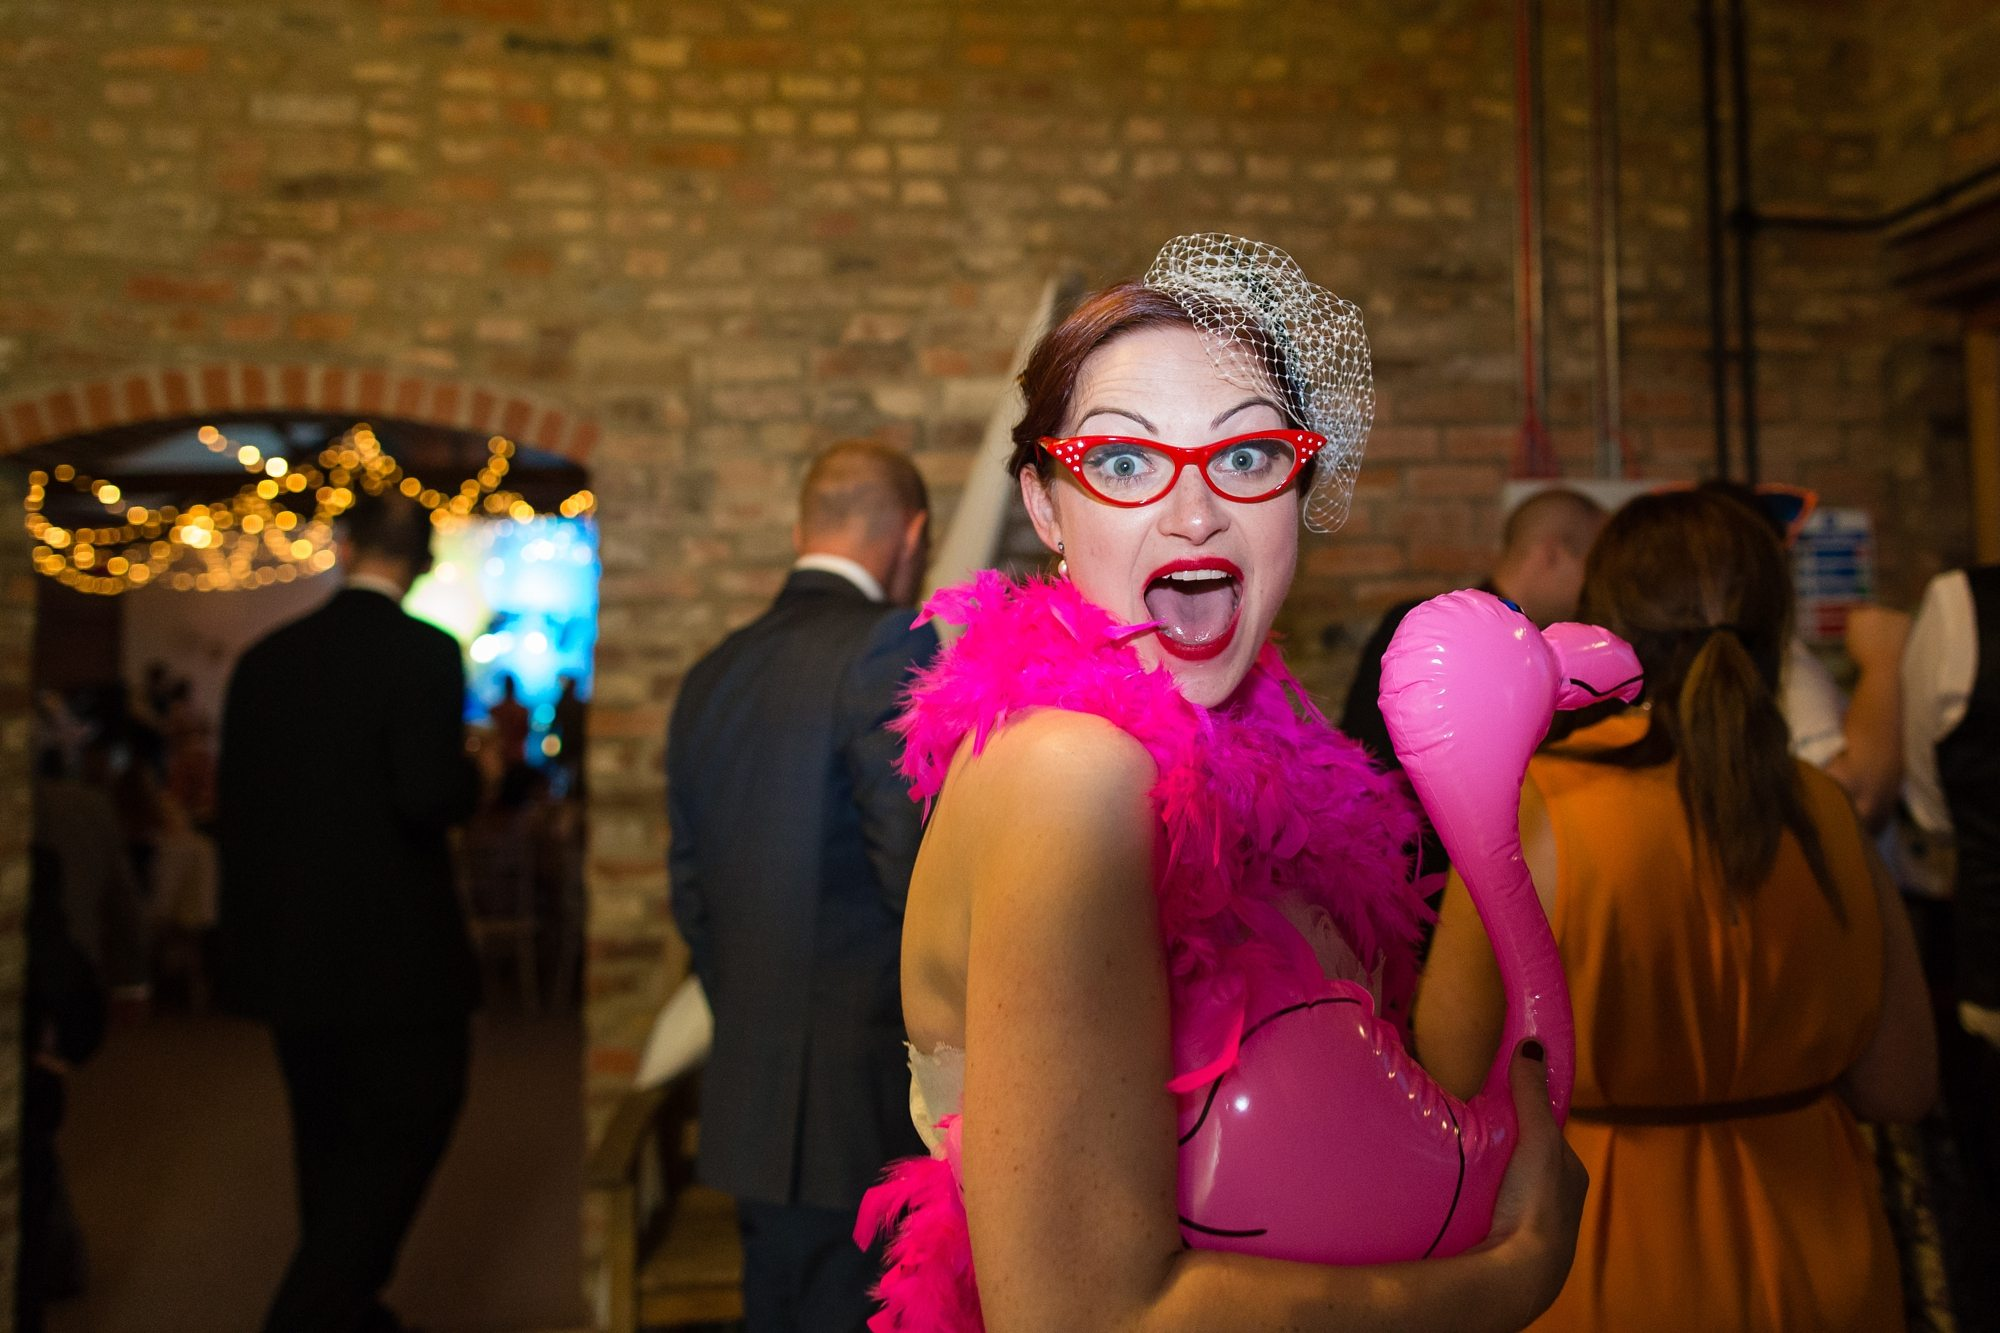 bride looking at camera with inflatable flamingo and silly glasses